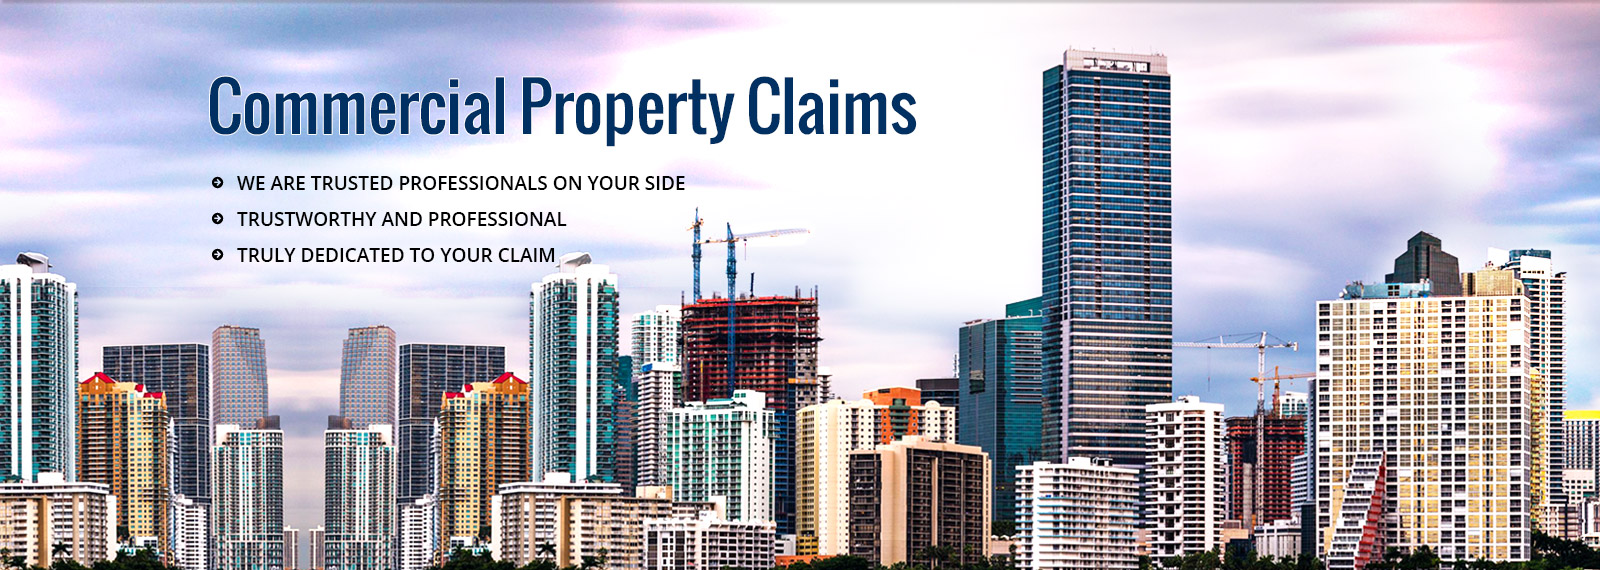 Commercial Property Claims